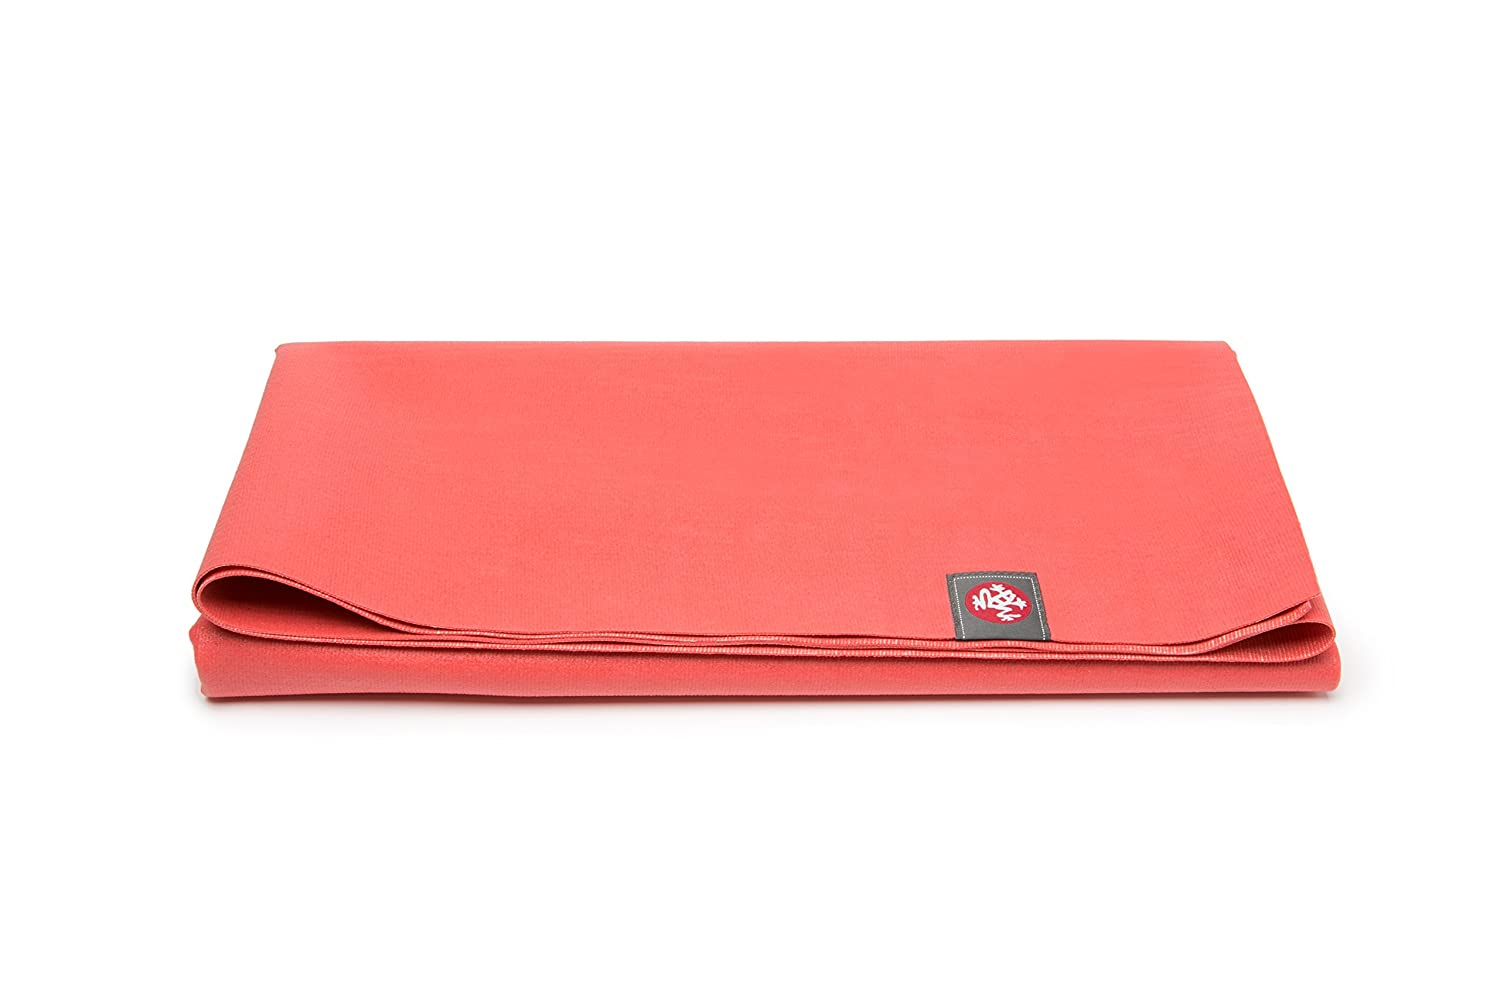 Amazon.com: Manduka eKo Superlight – Travel Yoga & Pilates ...